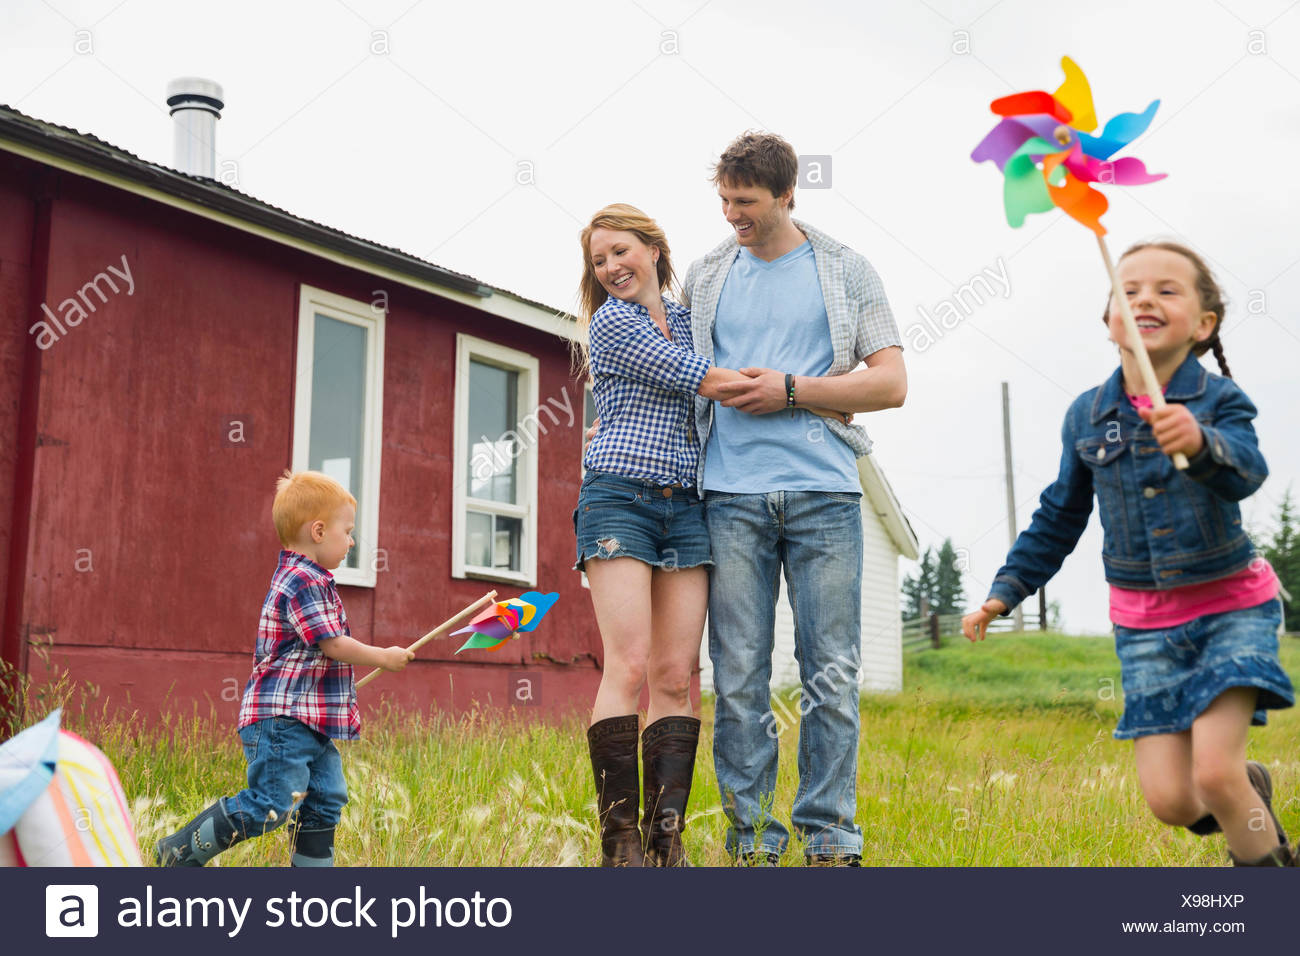 Parents watching children play with pinwheels - Stock Image